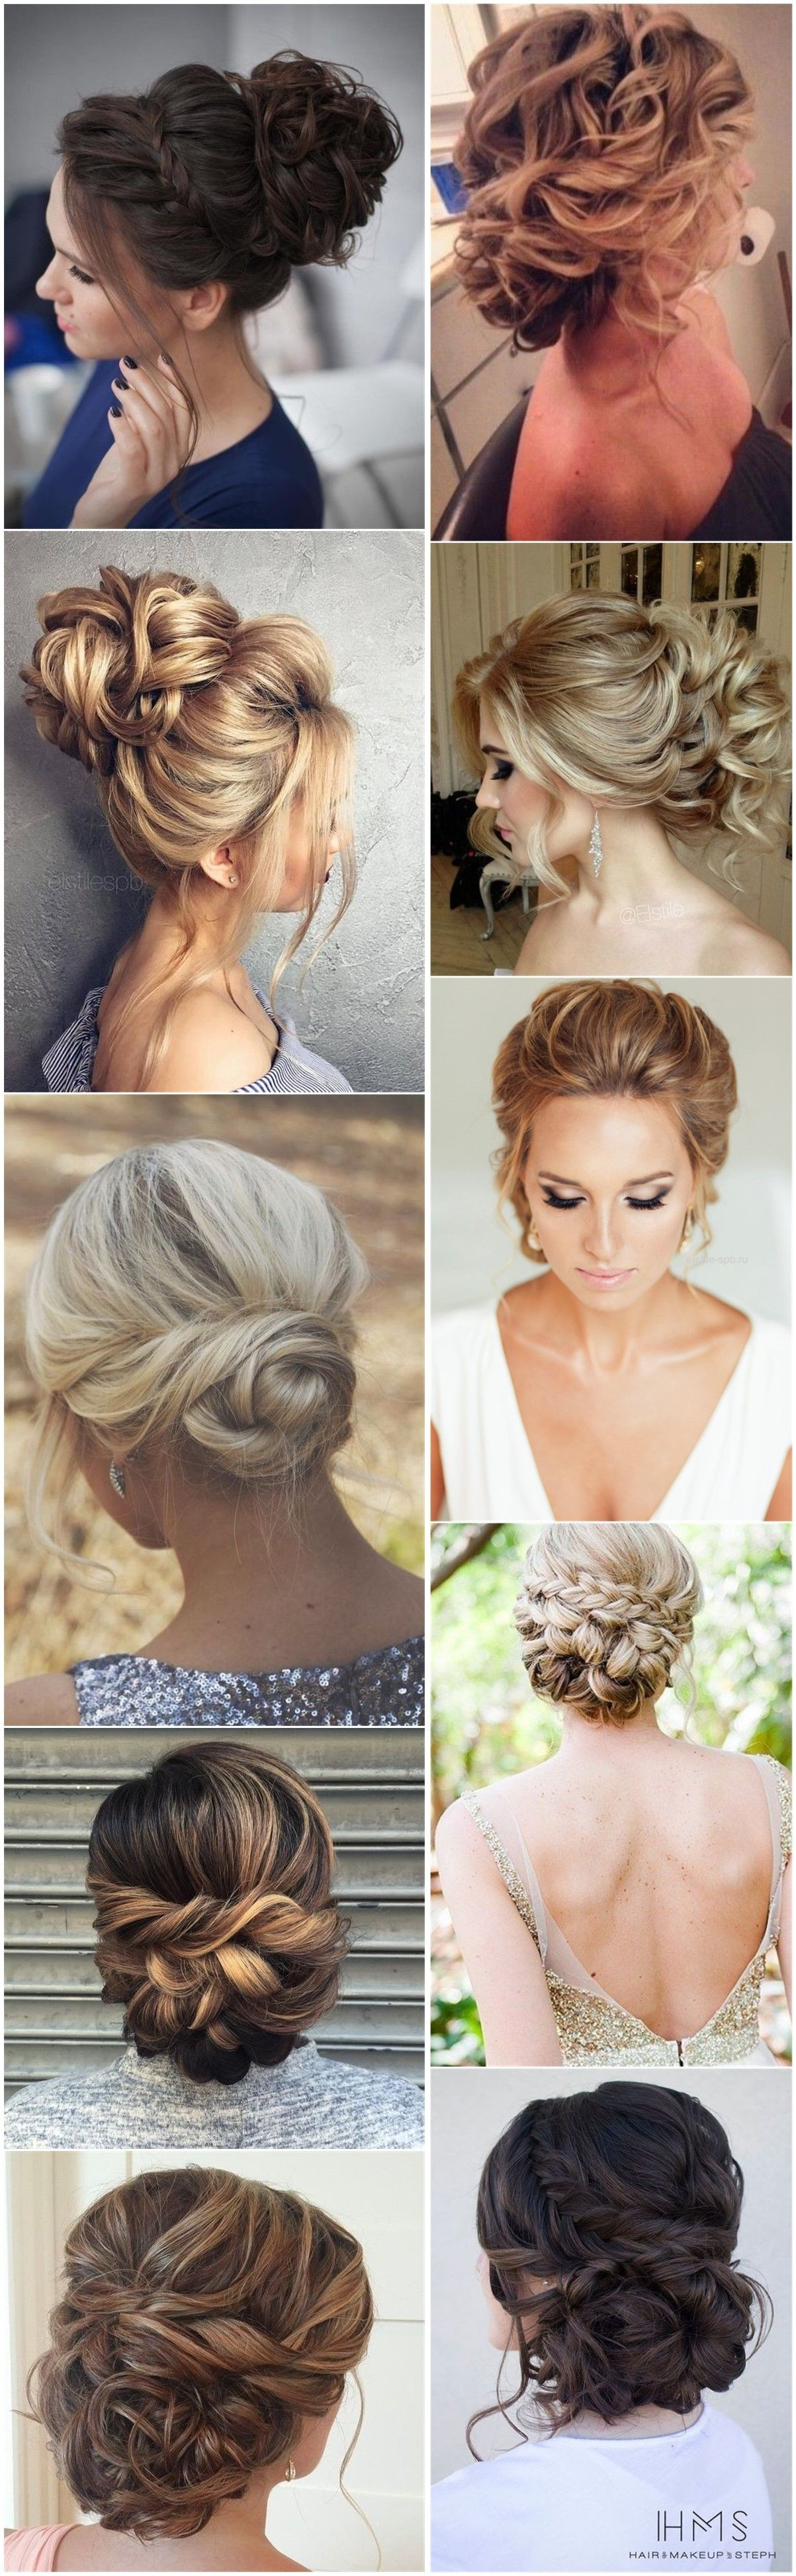 e and See why You Can t Miss These 30 Wedding Updos for Long Hair